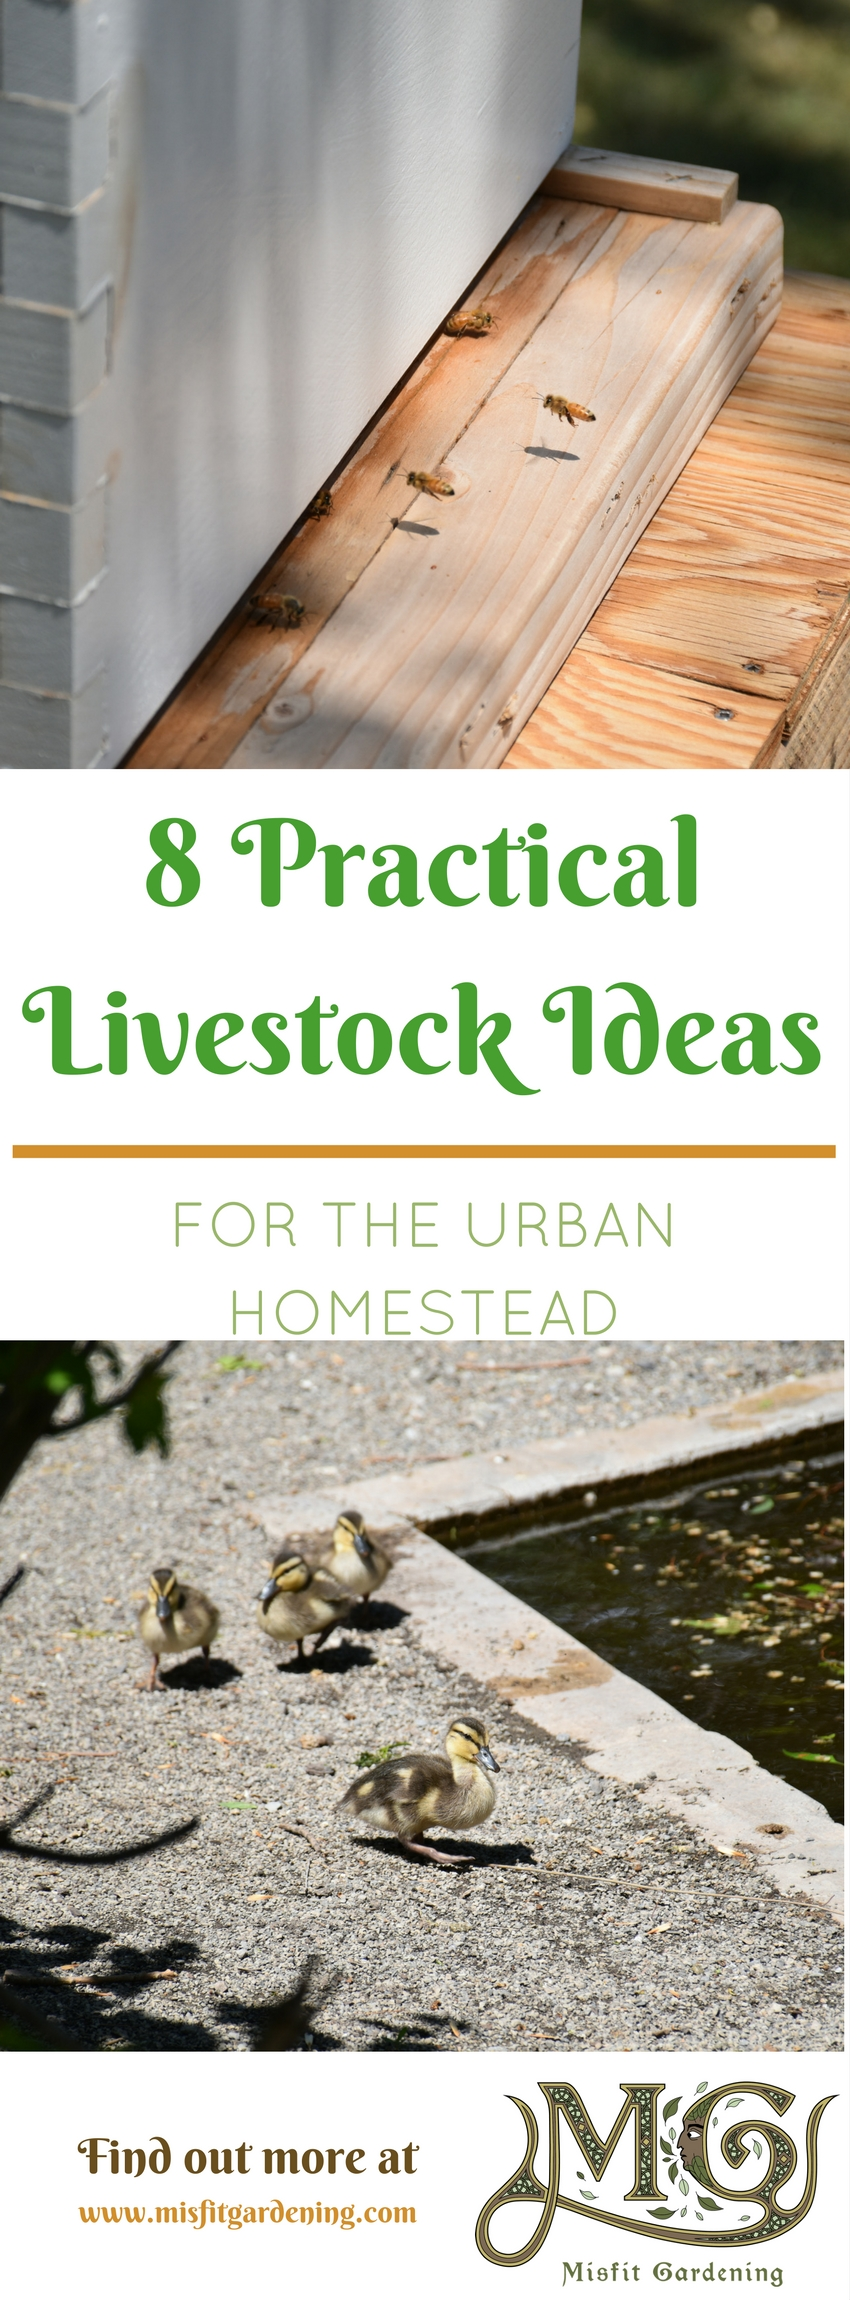 8 practical livestock ideas for urban homesteaders that you can raise in your backyard. Click to find out more or pin it for later